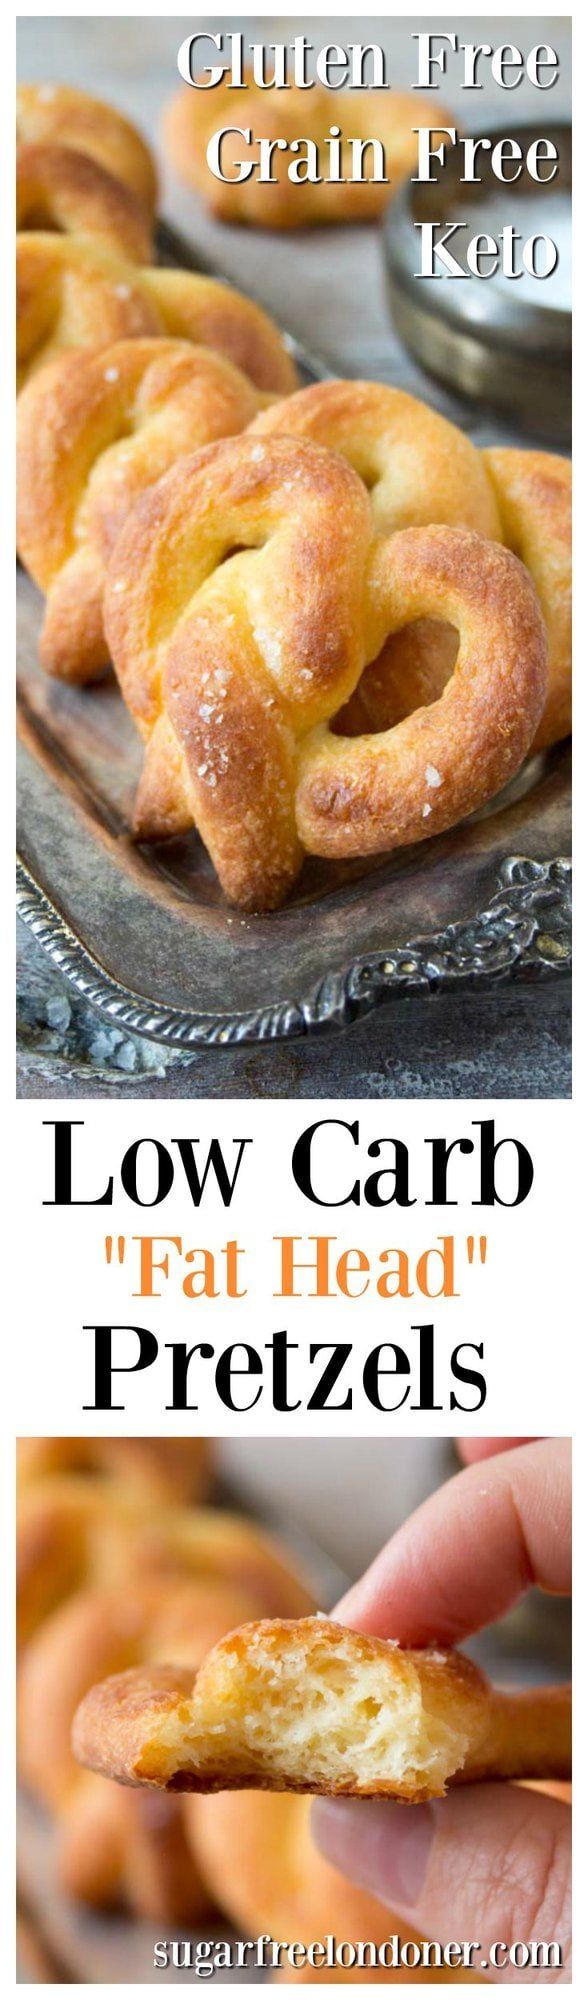 Soft and simply irresistible: low carb, grain free pretzels take snacking to the next level. Made with mozzarella (Fat Head) dough!